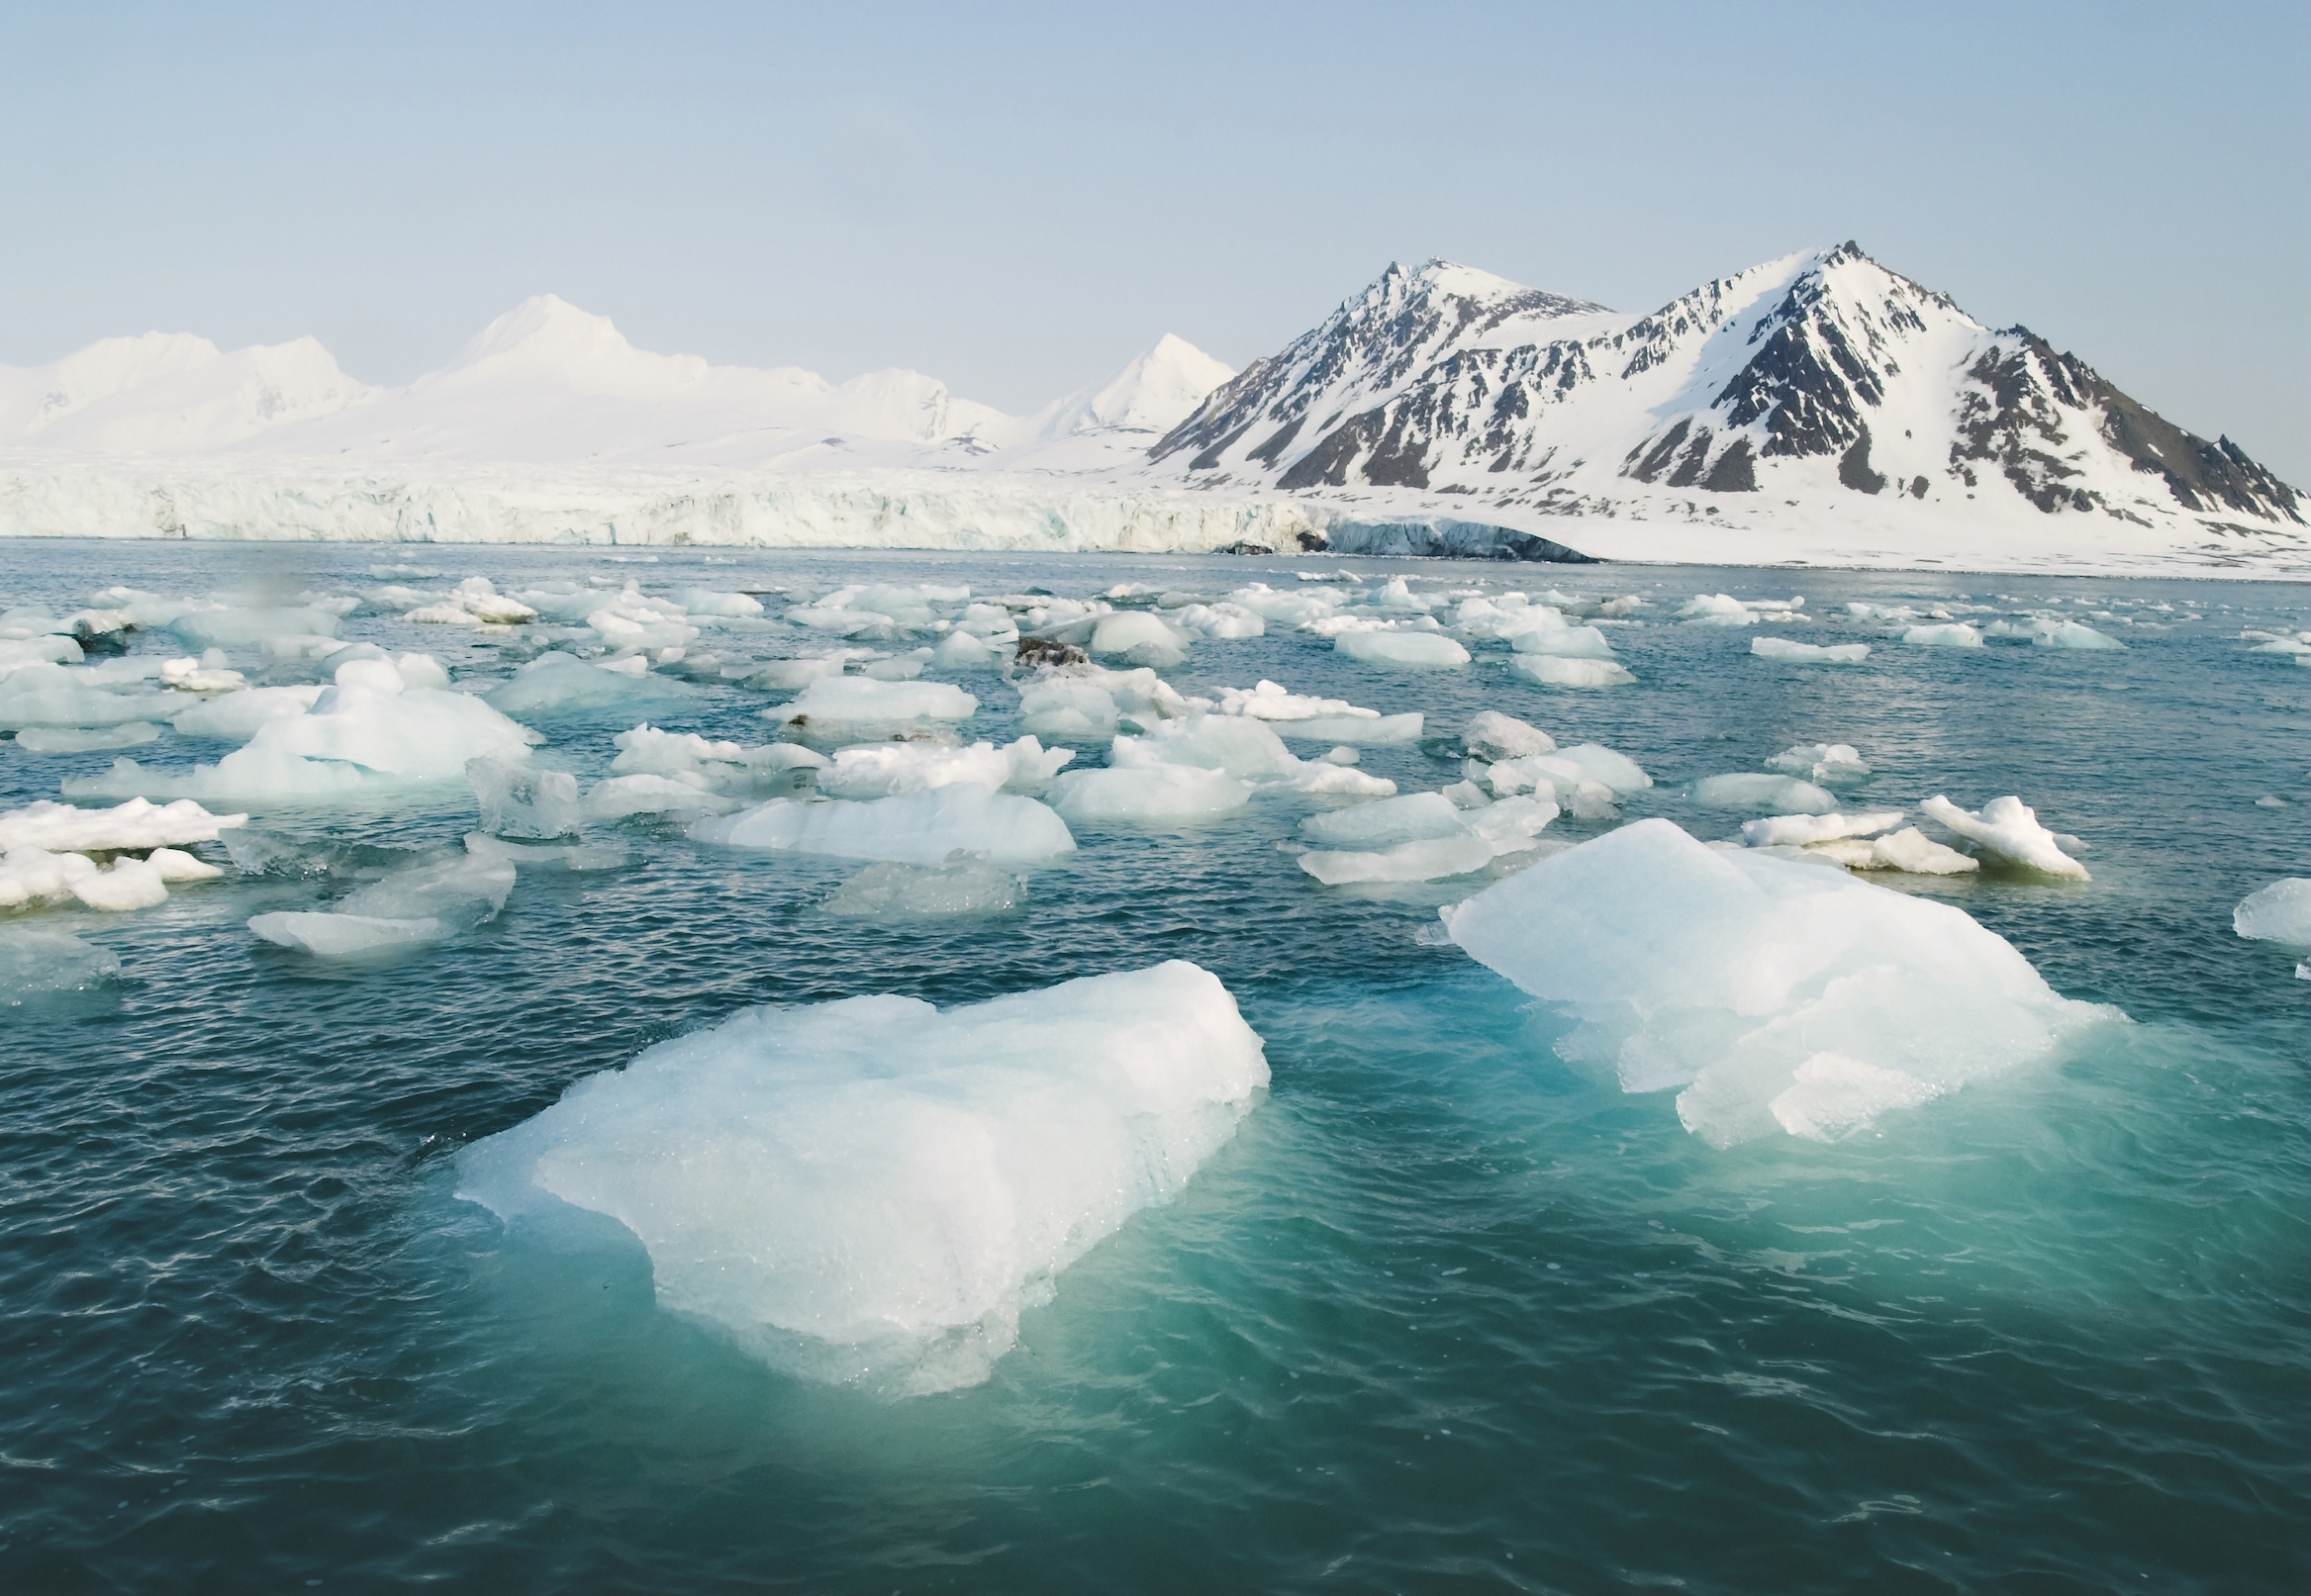 Shelf sediment altering the Arctic Ocean's composition could pose a threat to biological productivity and species collections.